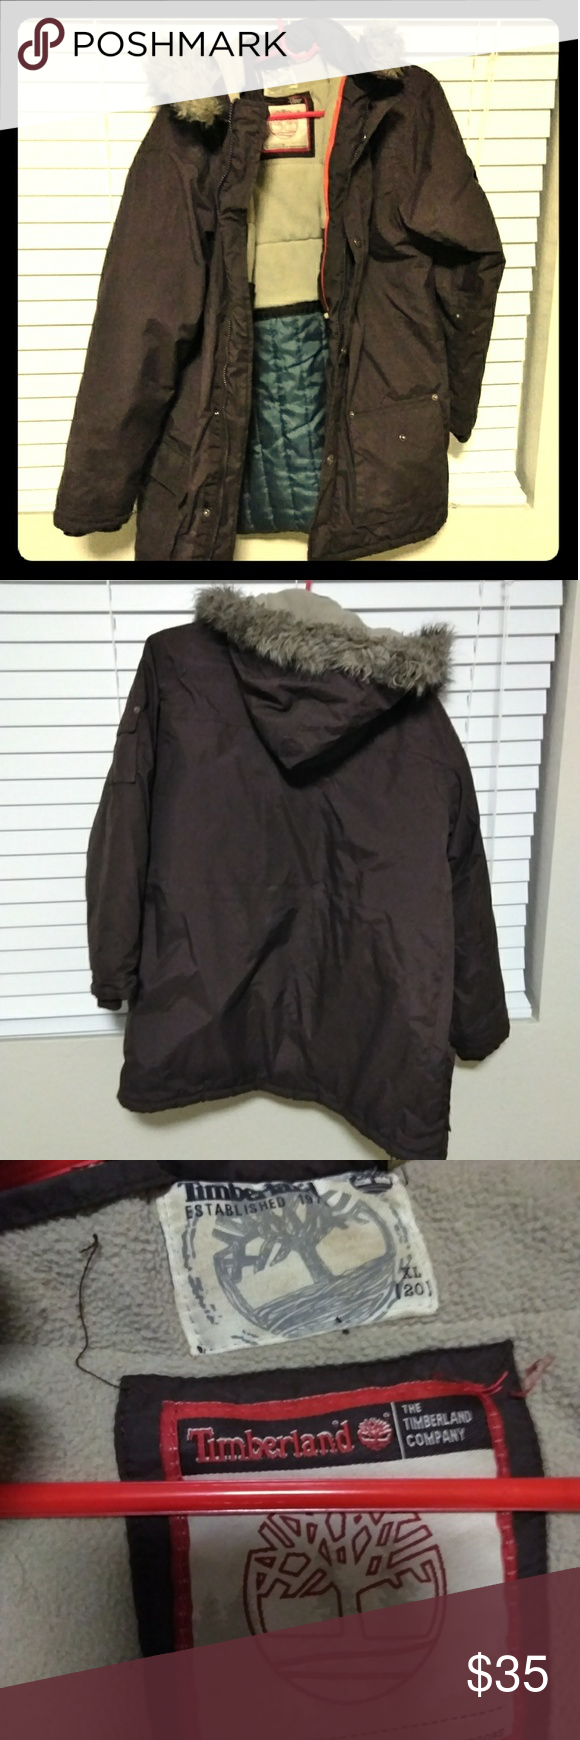 ❄ 🌨️Timberland winter coat🌨 ☃ Nice heavy winter jacket. Could e7e3626a9